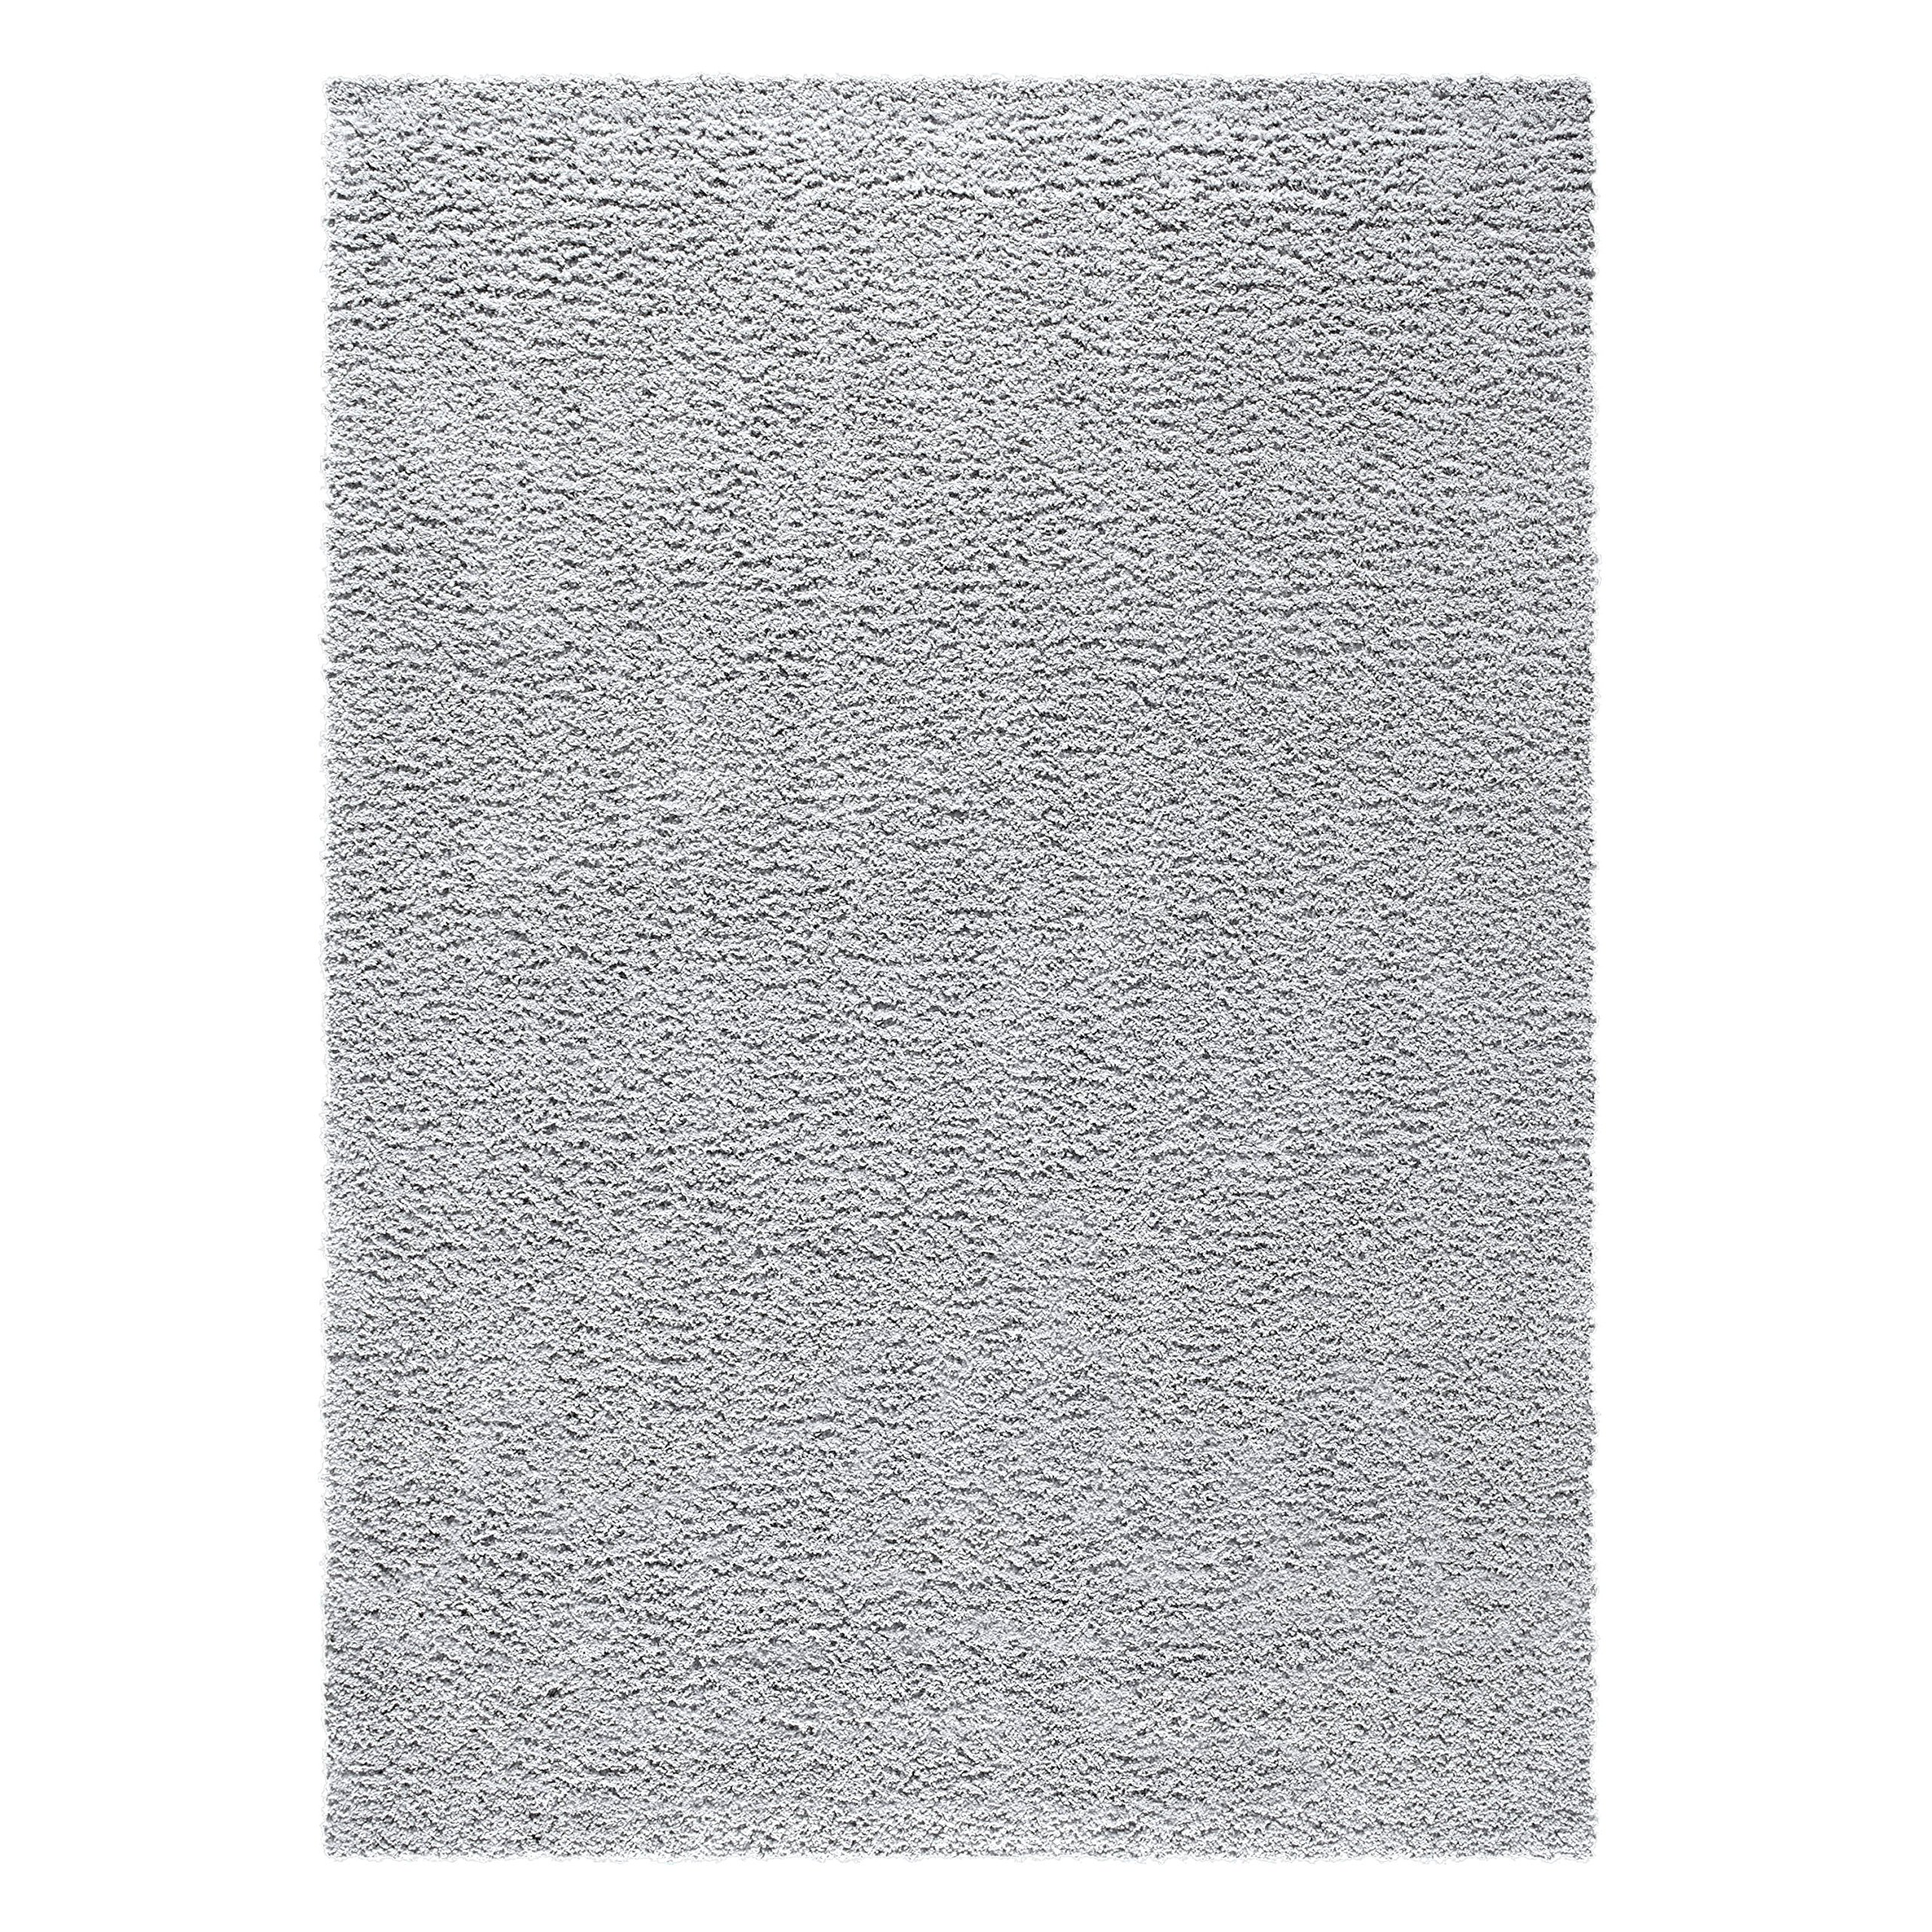 Area Rugs, Maples Rugs [Made in USA][Catriona] 7' x 10' Non Slip Padded Large Rug for Living Room, Bedroom, and Dining Room - Soft Silver by Maples Rugs